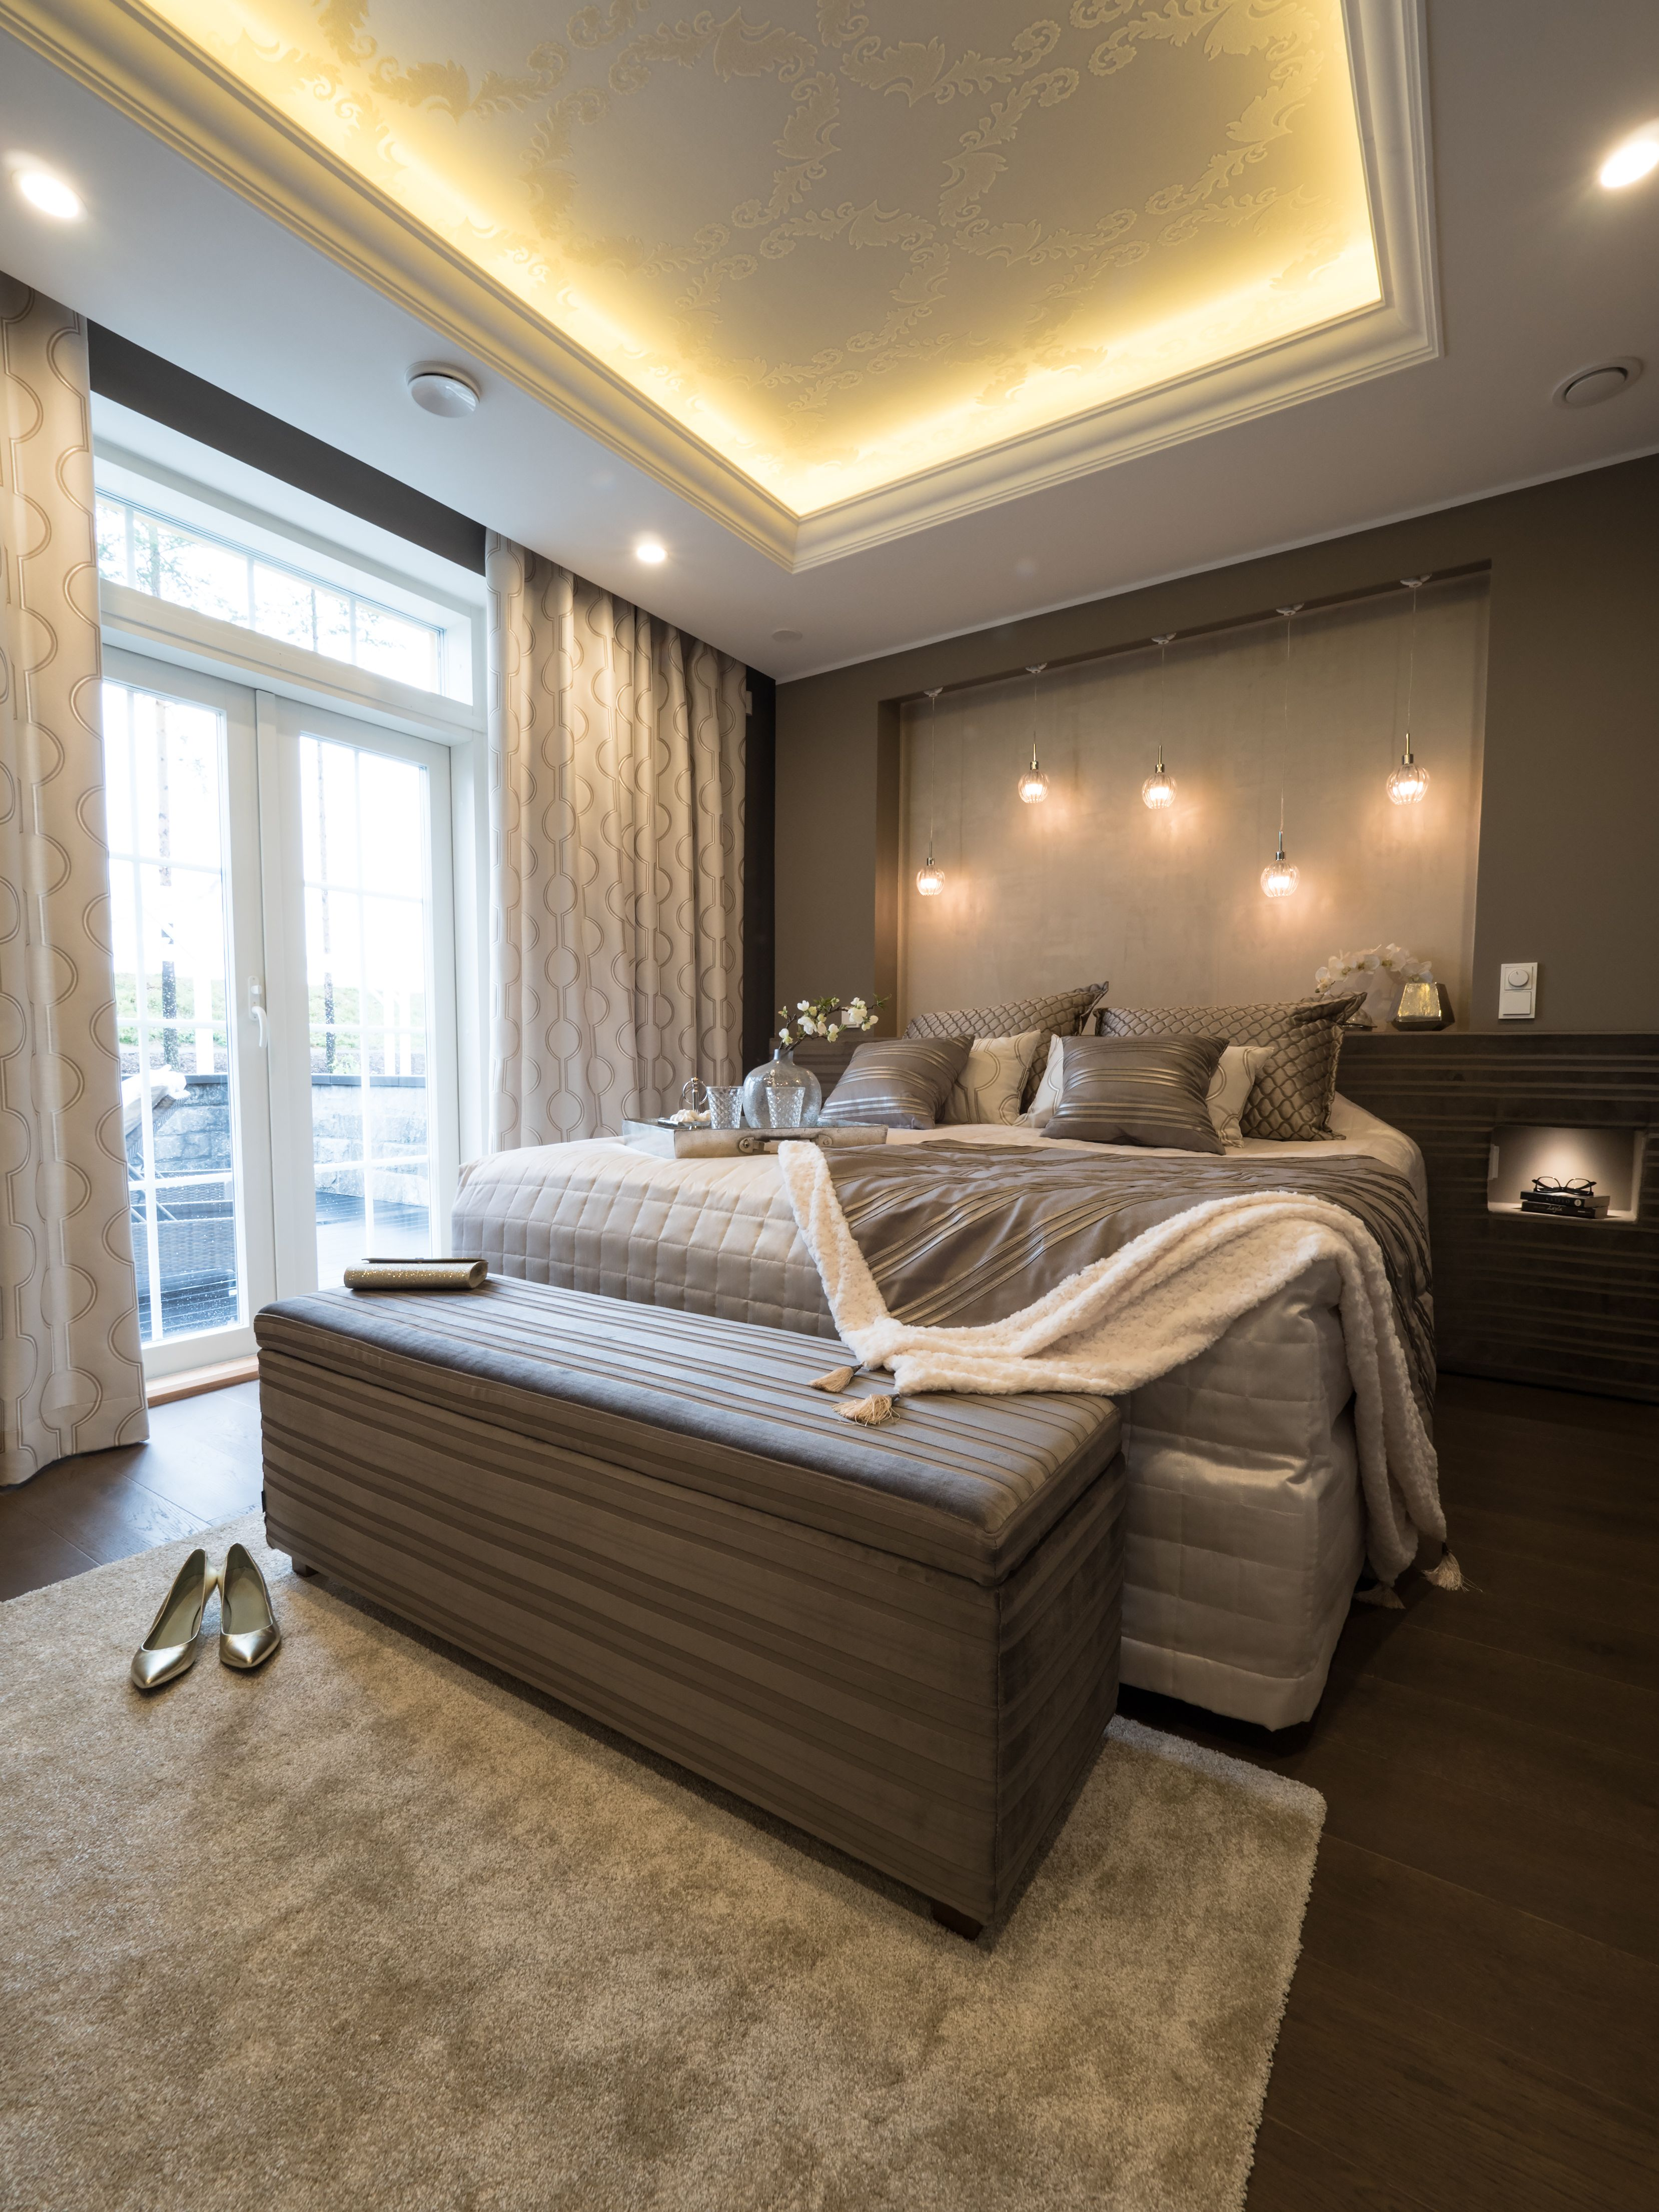 Bedroom Ceiling Interior Master Bedroom With Beautiful Iiris Led Lights And